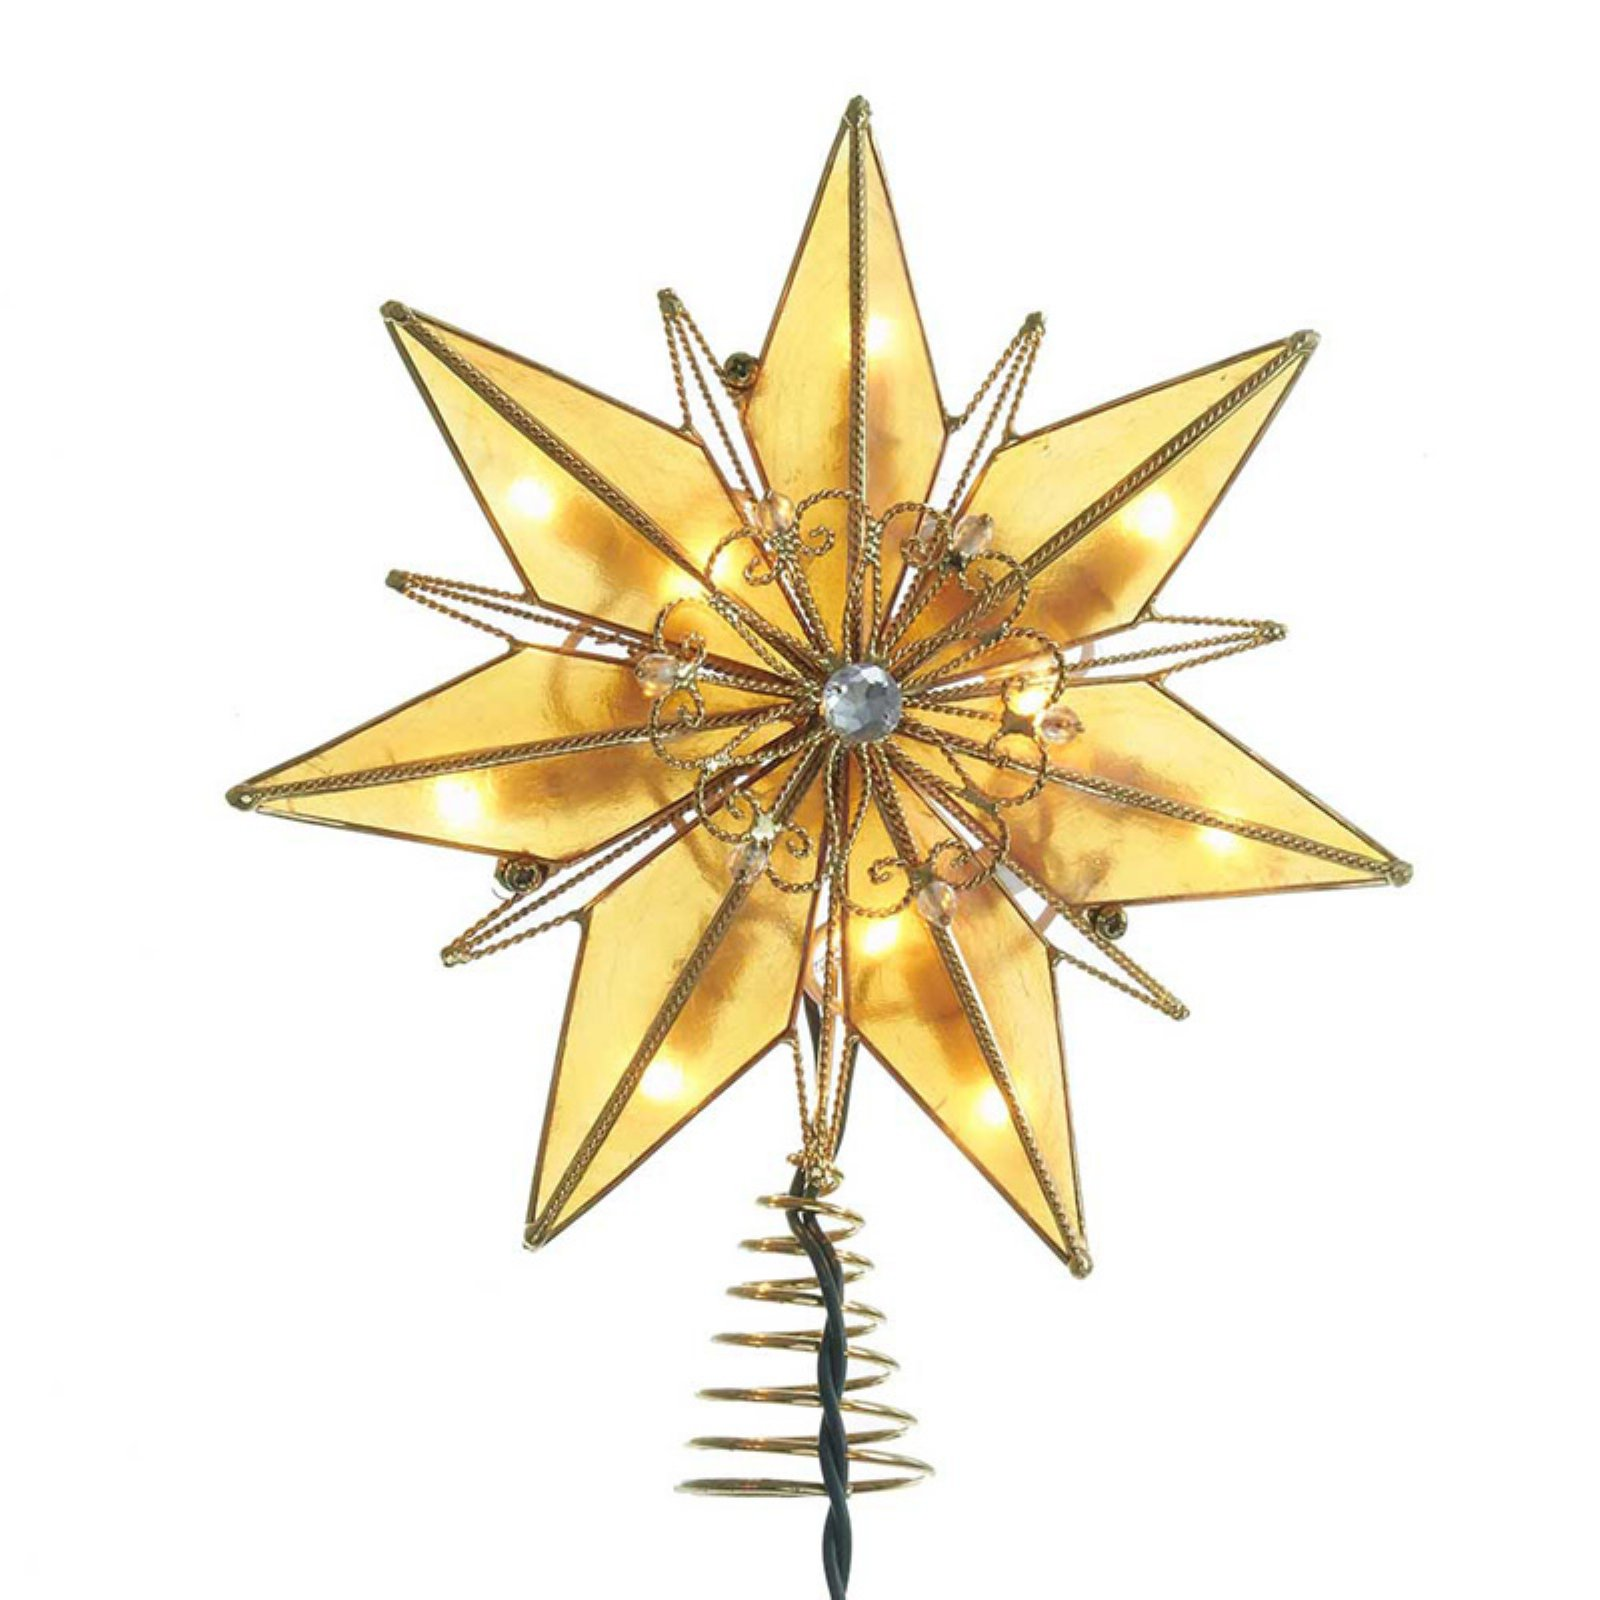 Kurt S. Adler 10-Light 6-Point Gold Capiz Star Treetop with Center Gem